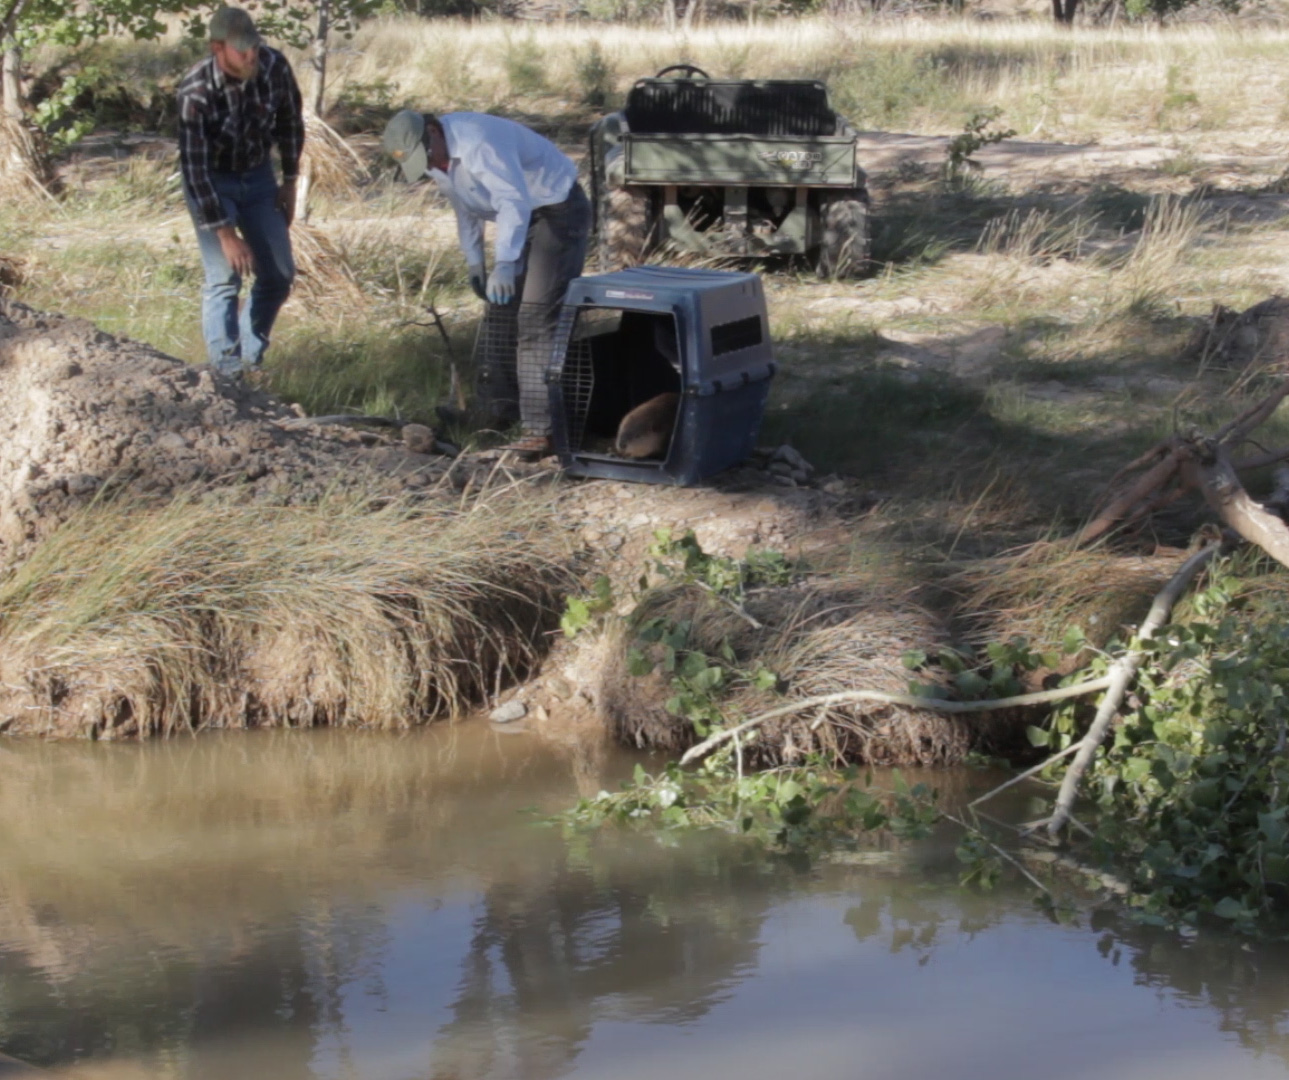 Reintroducing beaver on a ranch, at the request of the land owners, for stream restoration.